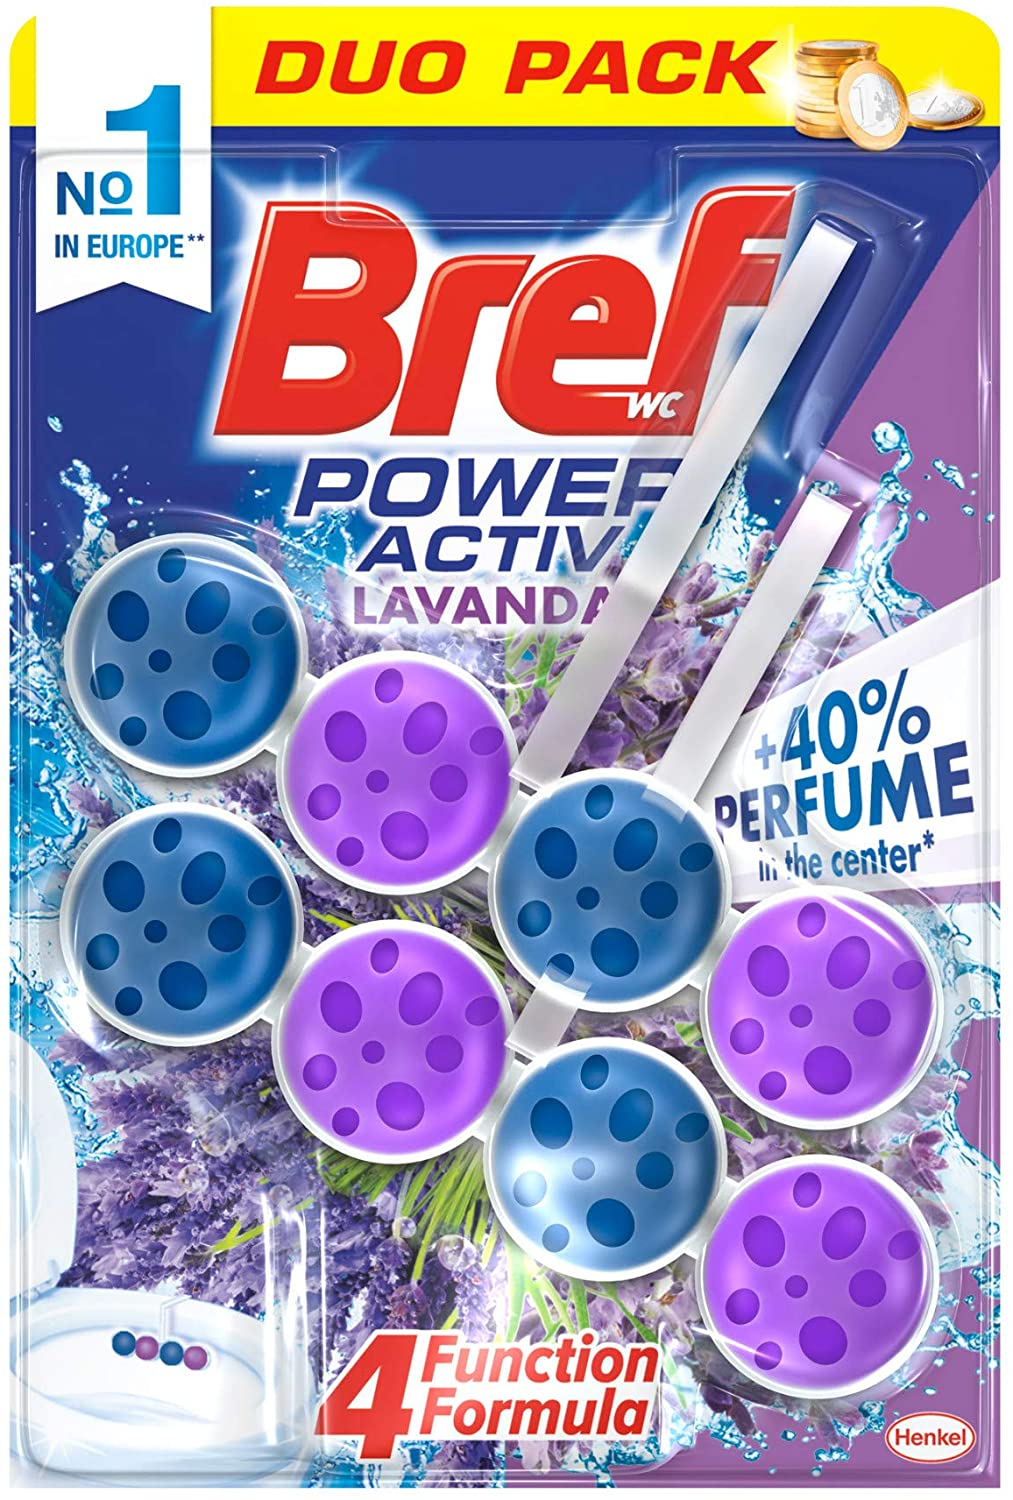 BREF WC POWER ACTIV LAVANDA 2X50G